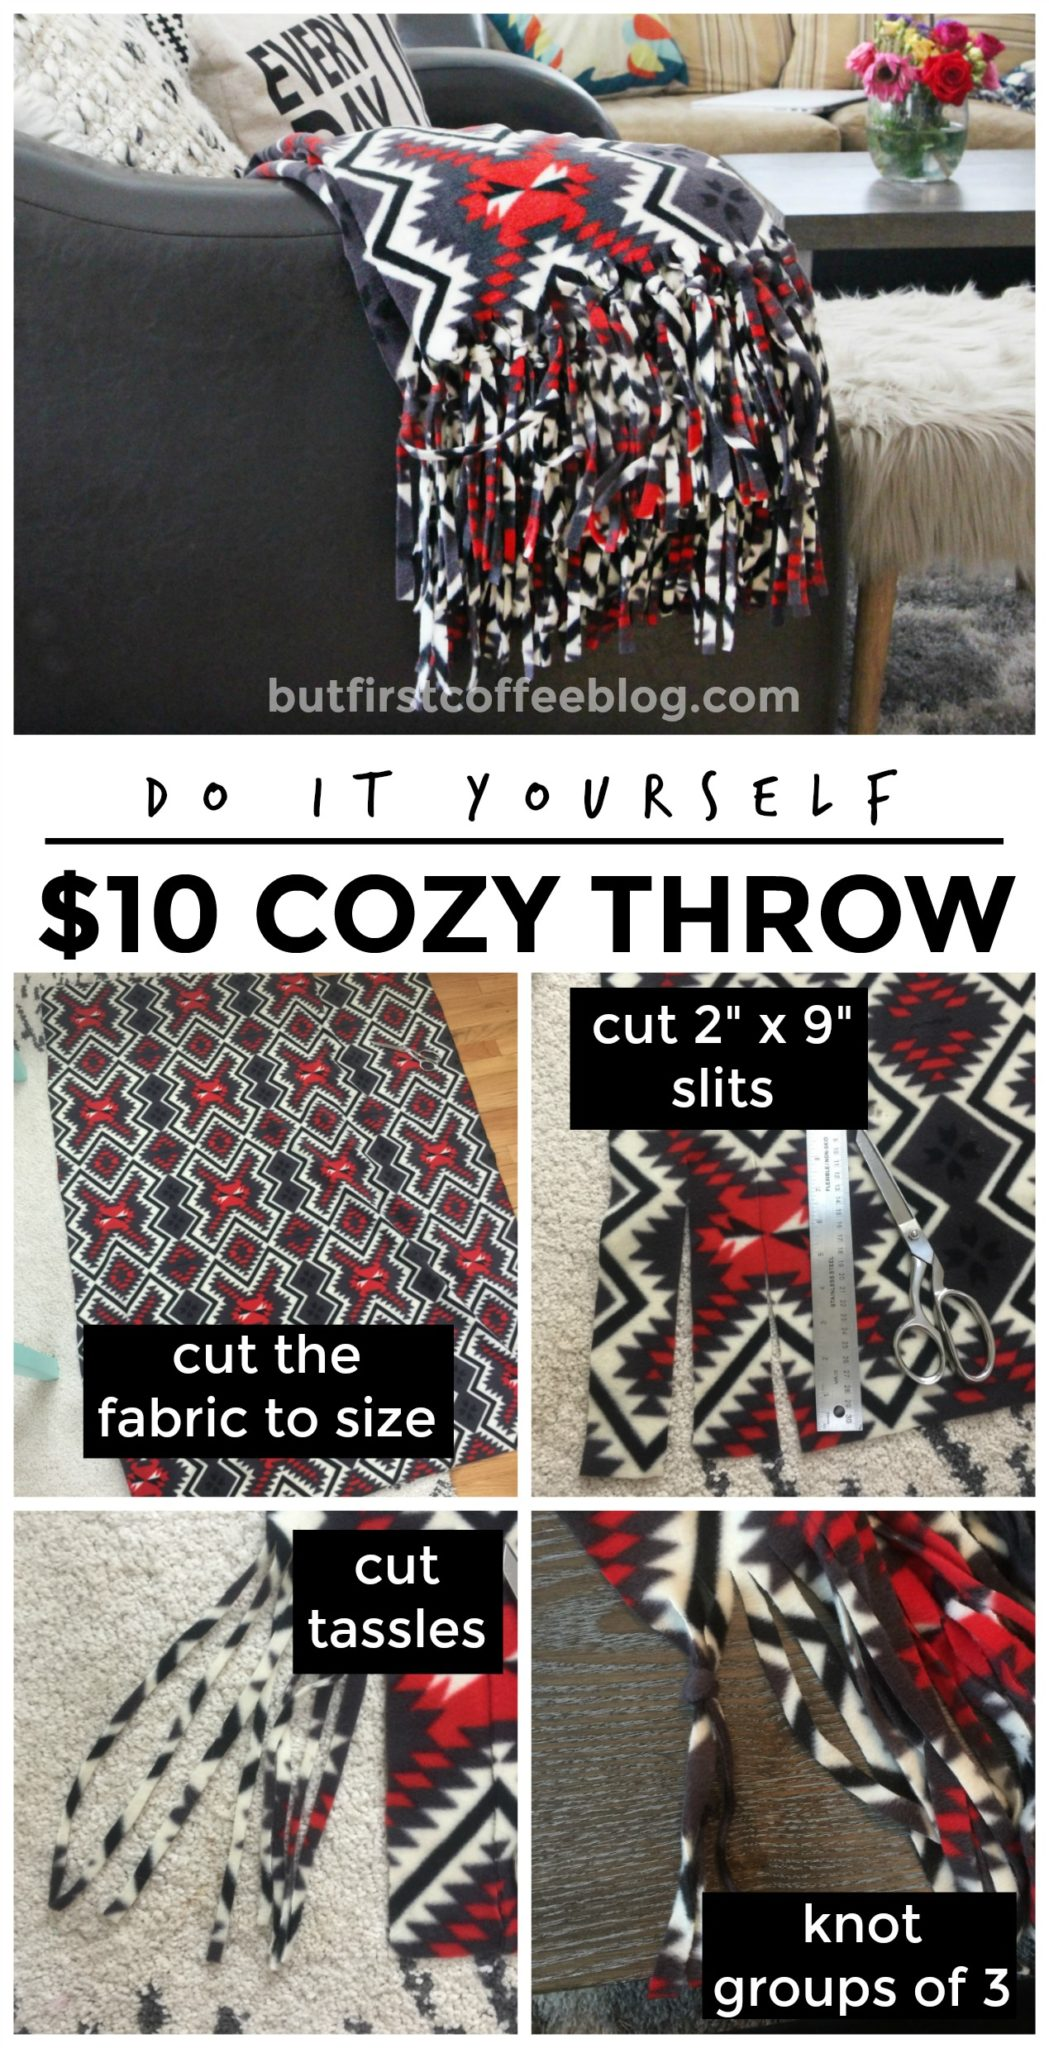 How to Make a Cozy, No Sew Throw Blanket Tutorial